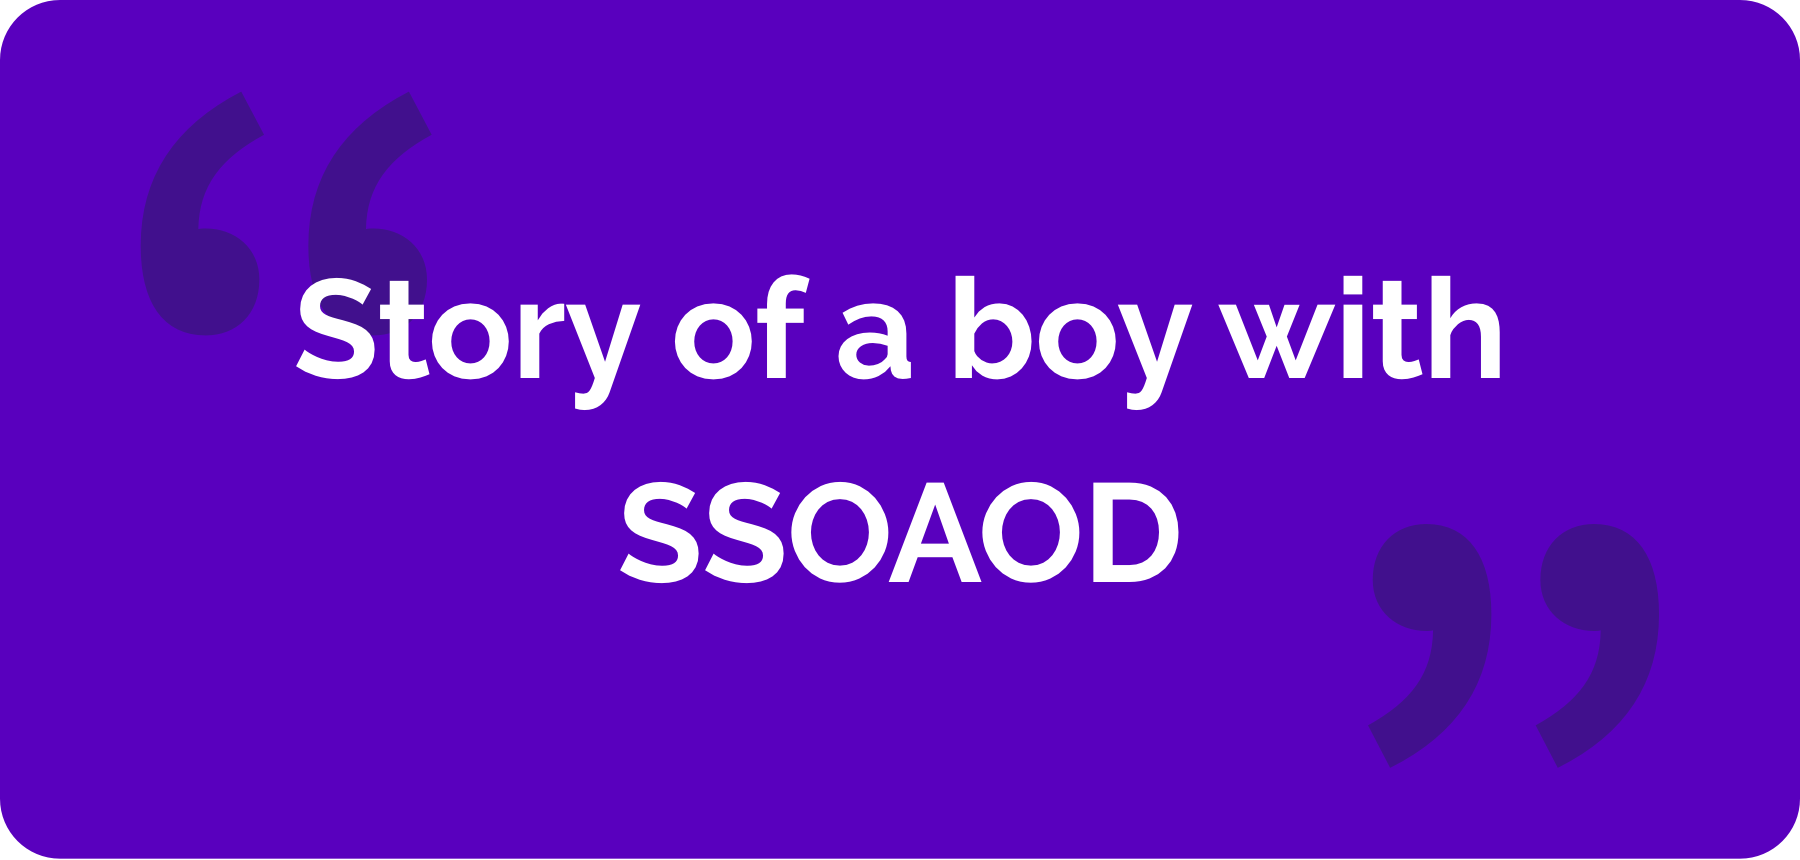 The cover of 'Story of a boy with SSOAOD'